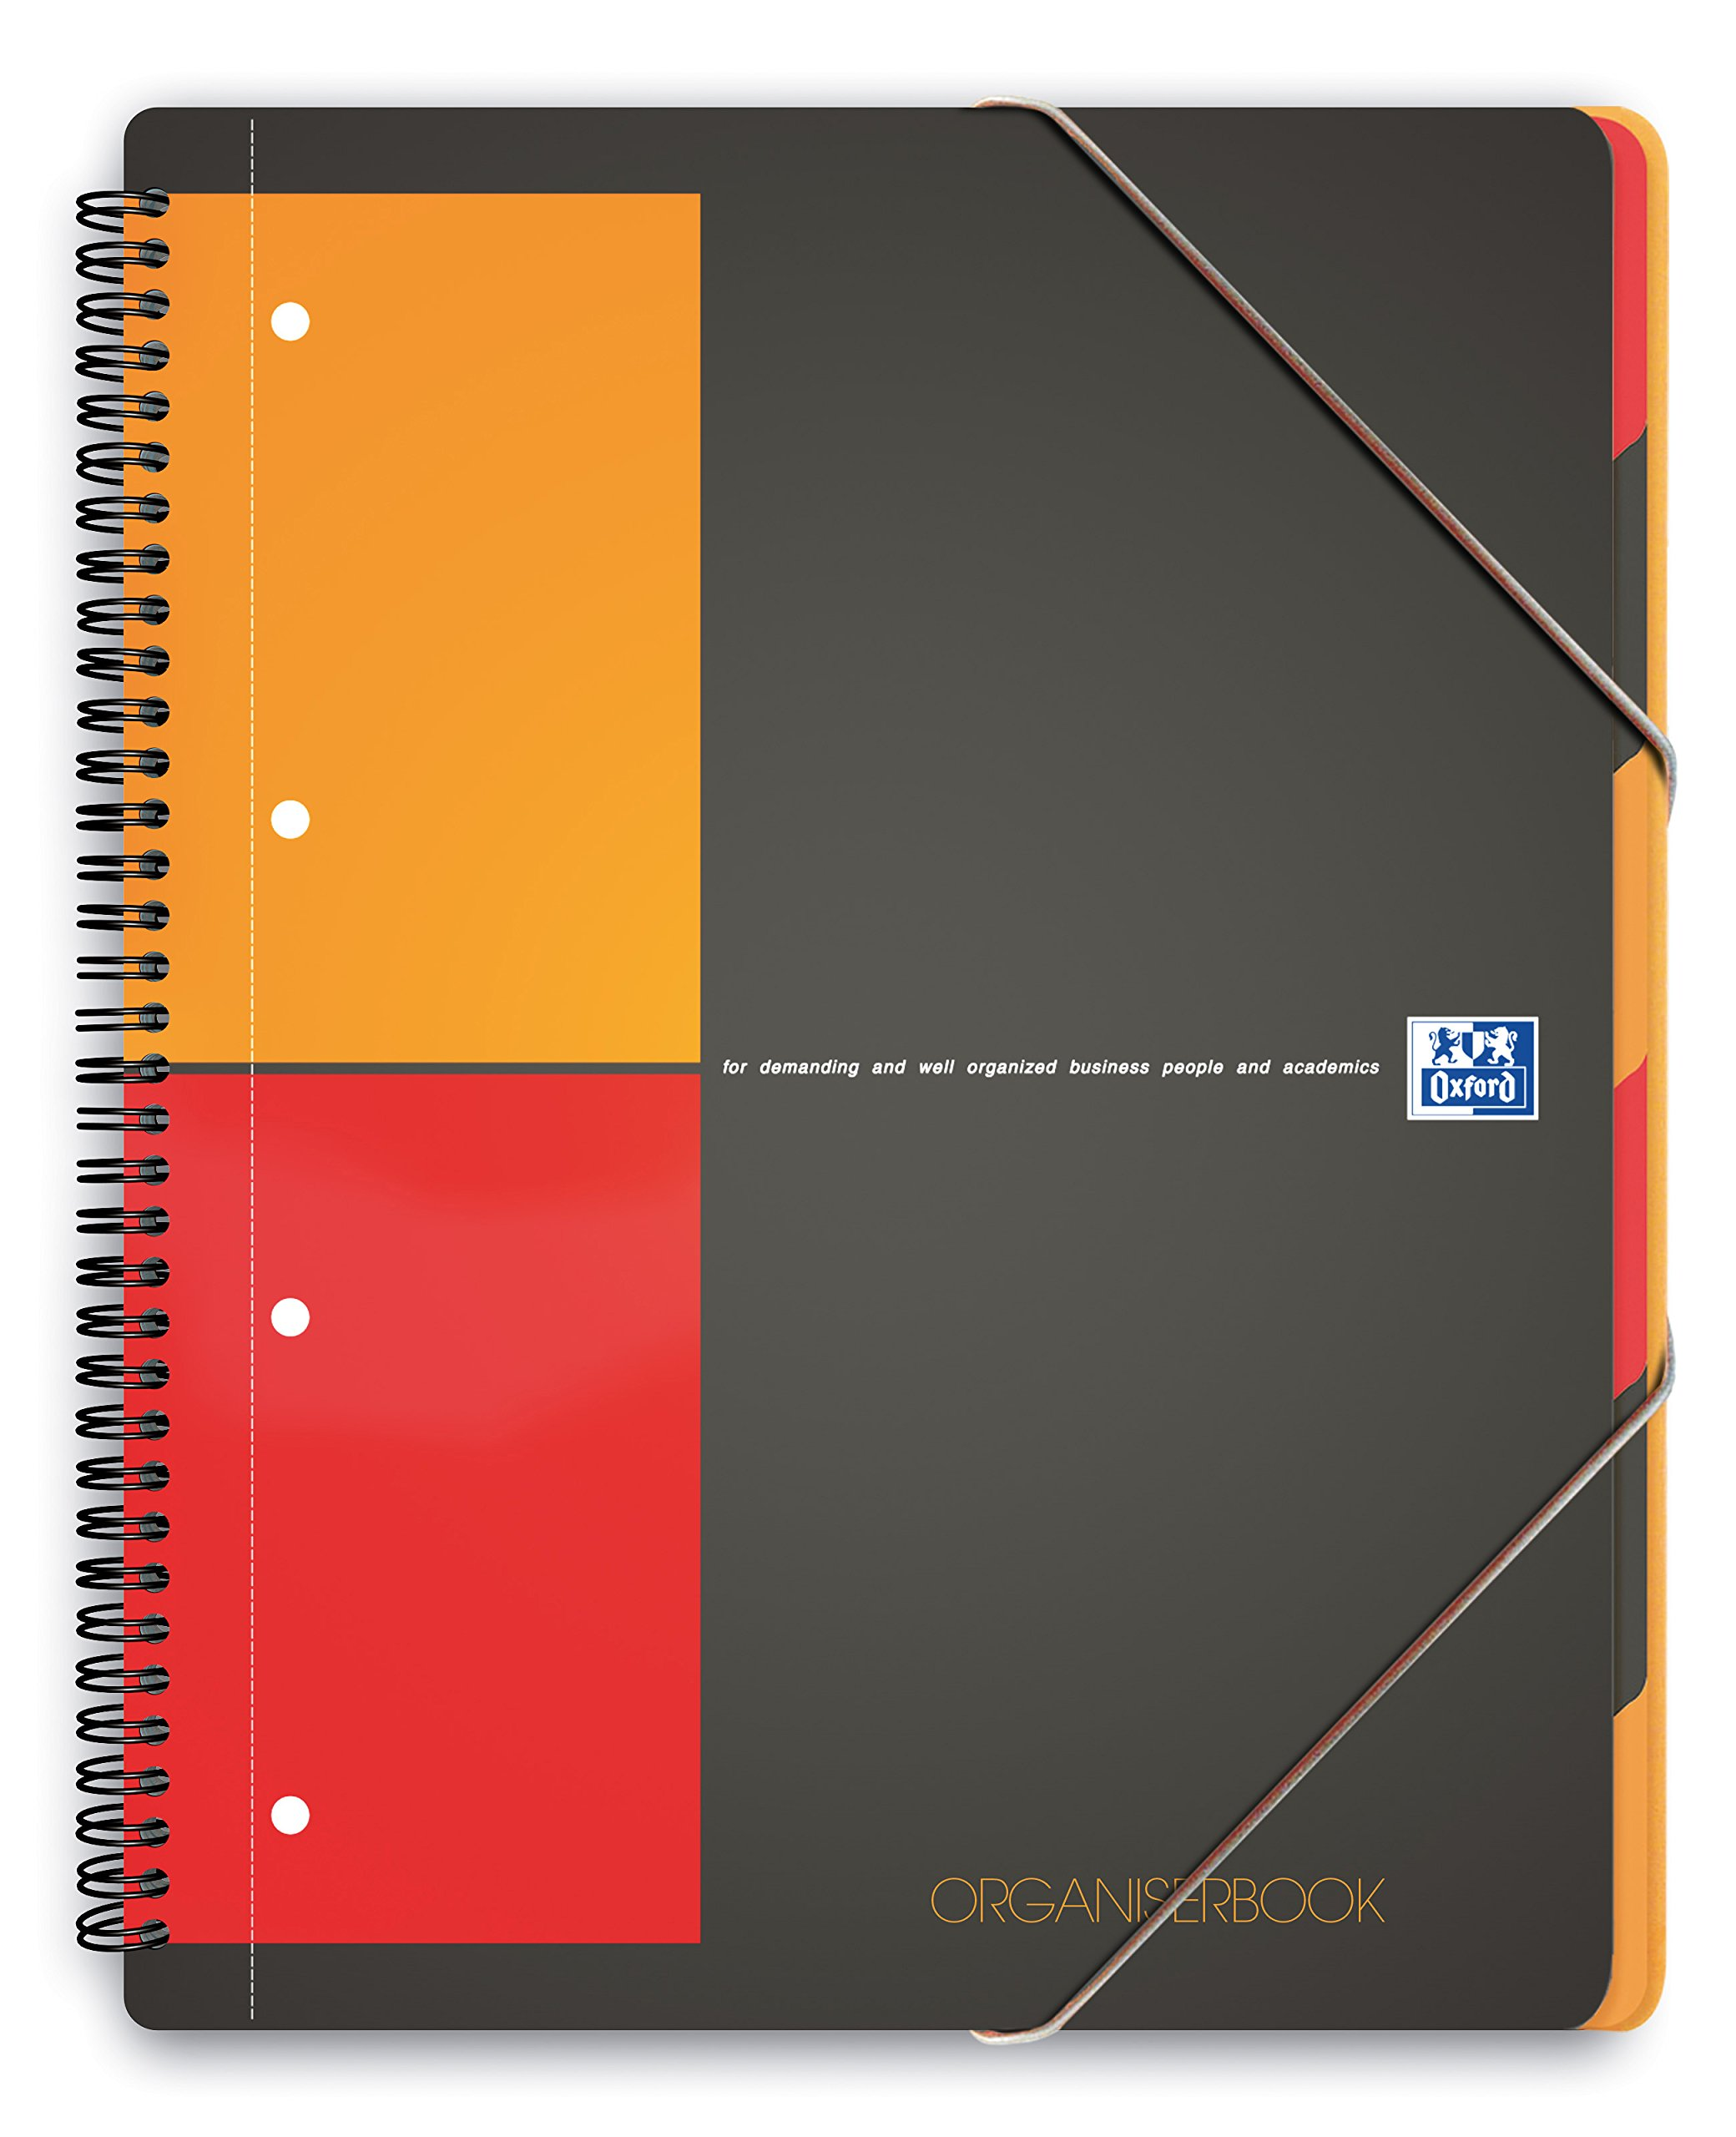 SPIRAL NOTEBOOK: WITH A FOLDER ORGANISERBOOK A4+ 80 PAGES GRAPH PAPER PP OXFORD